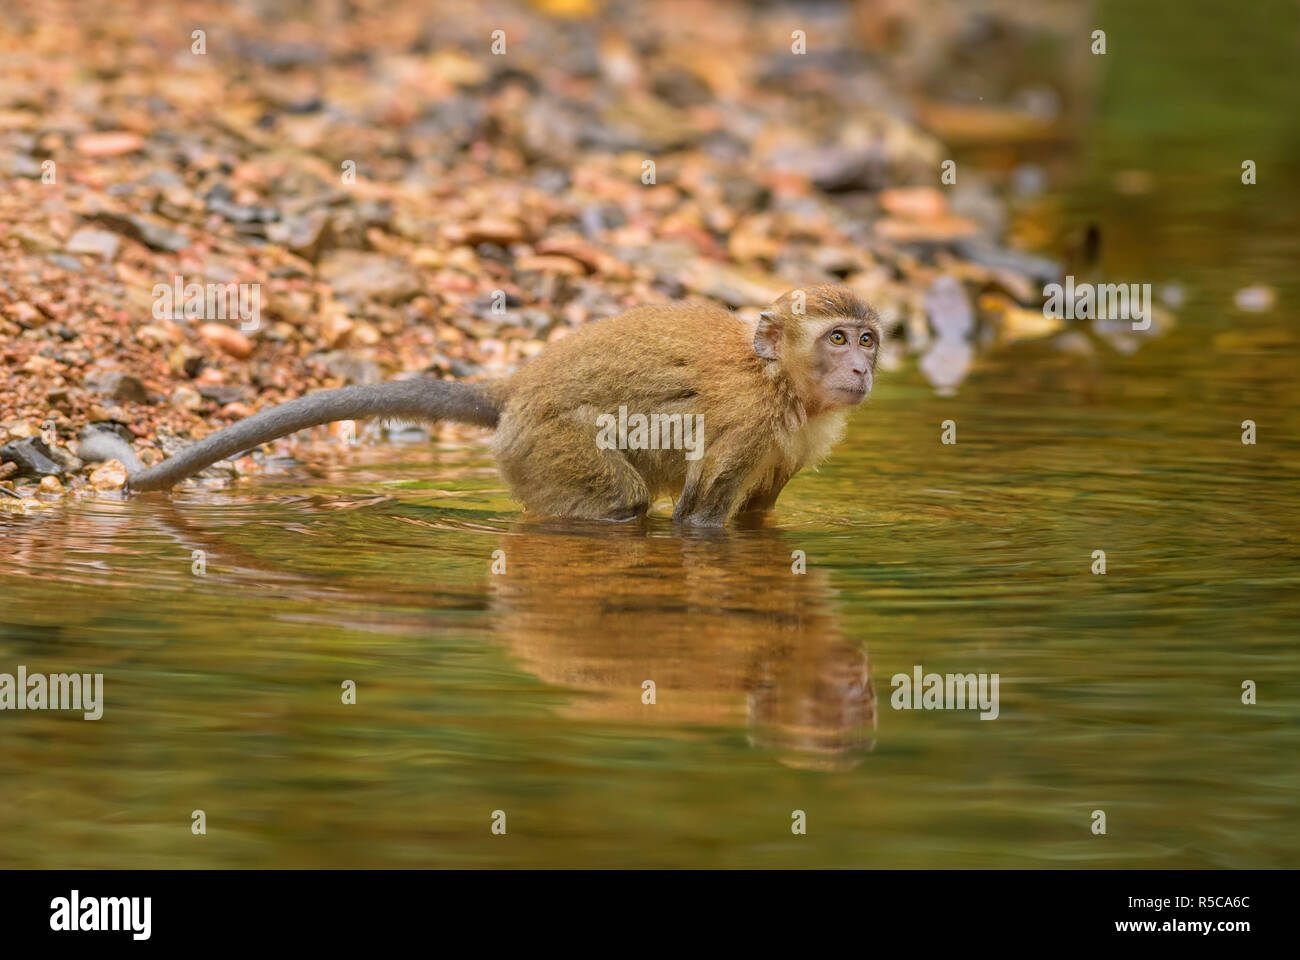 Long-tailed Macaque - Macaca fascicularis, common monkey from Southeast Asia forests, woodlands and gardens, Sumatra, Indonesia. - Stock Image